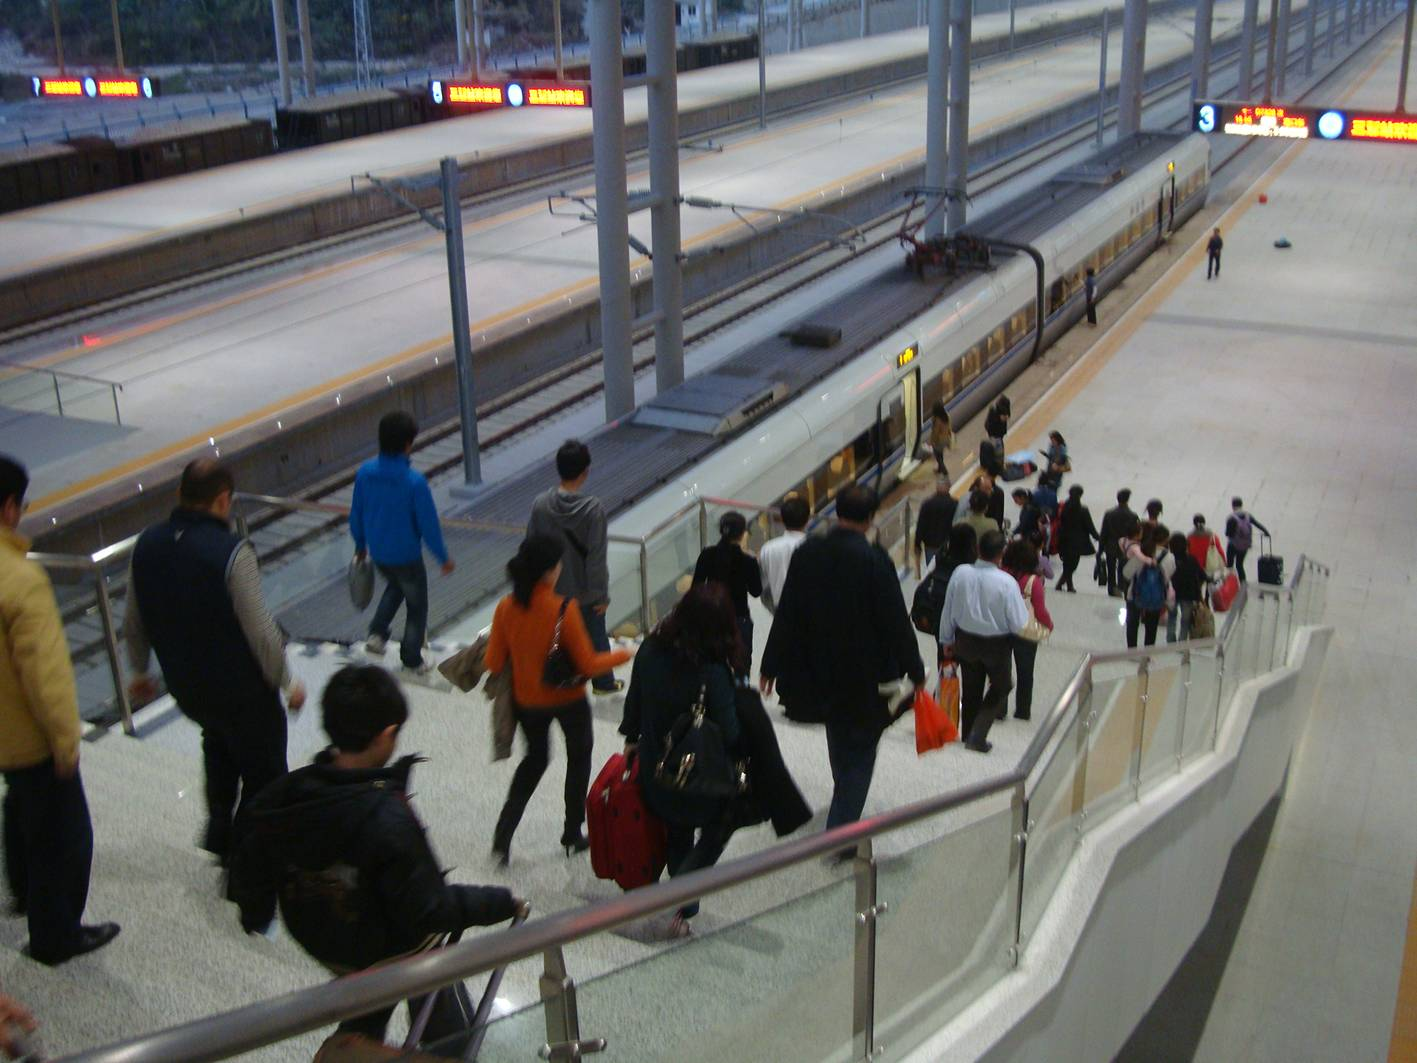 Picture:  Passengers stream down the stairs to the new fast train in the Sanya station.  Sanya, Hainan Island, China